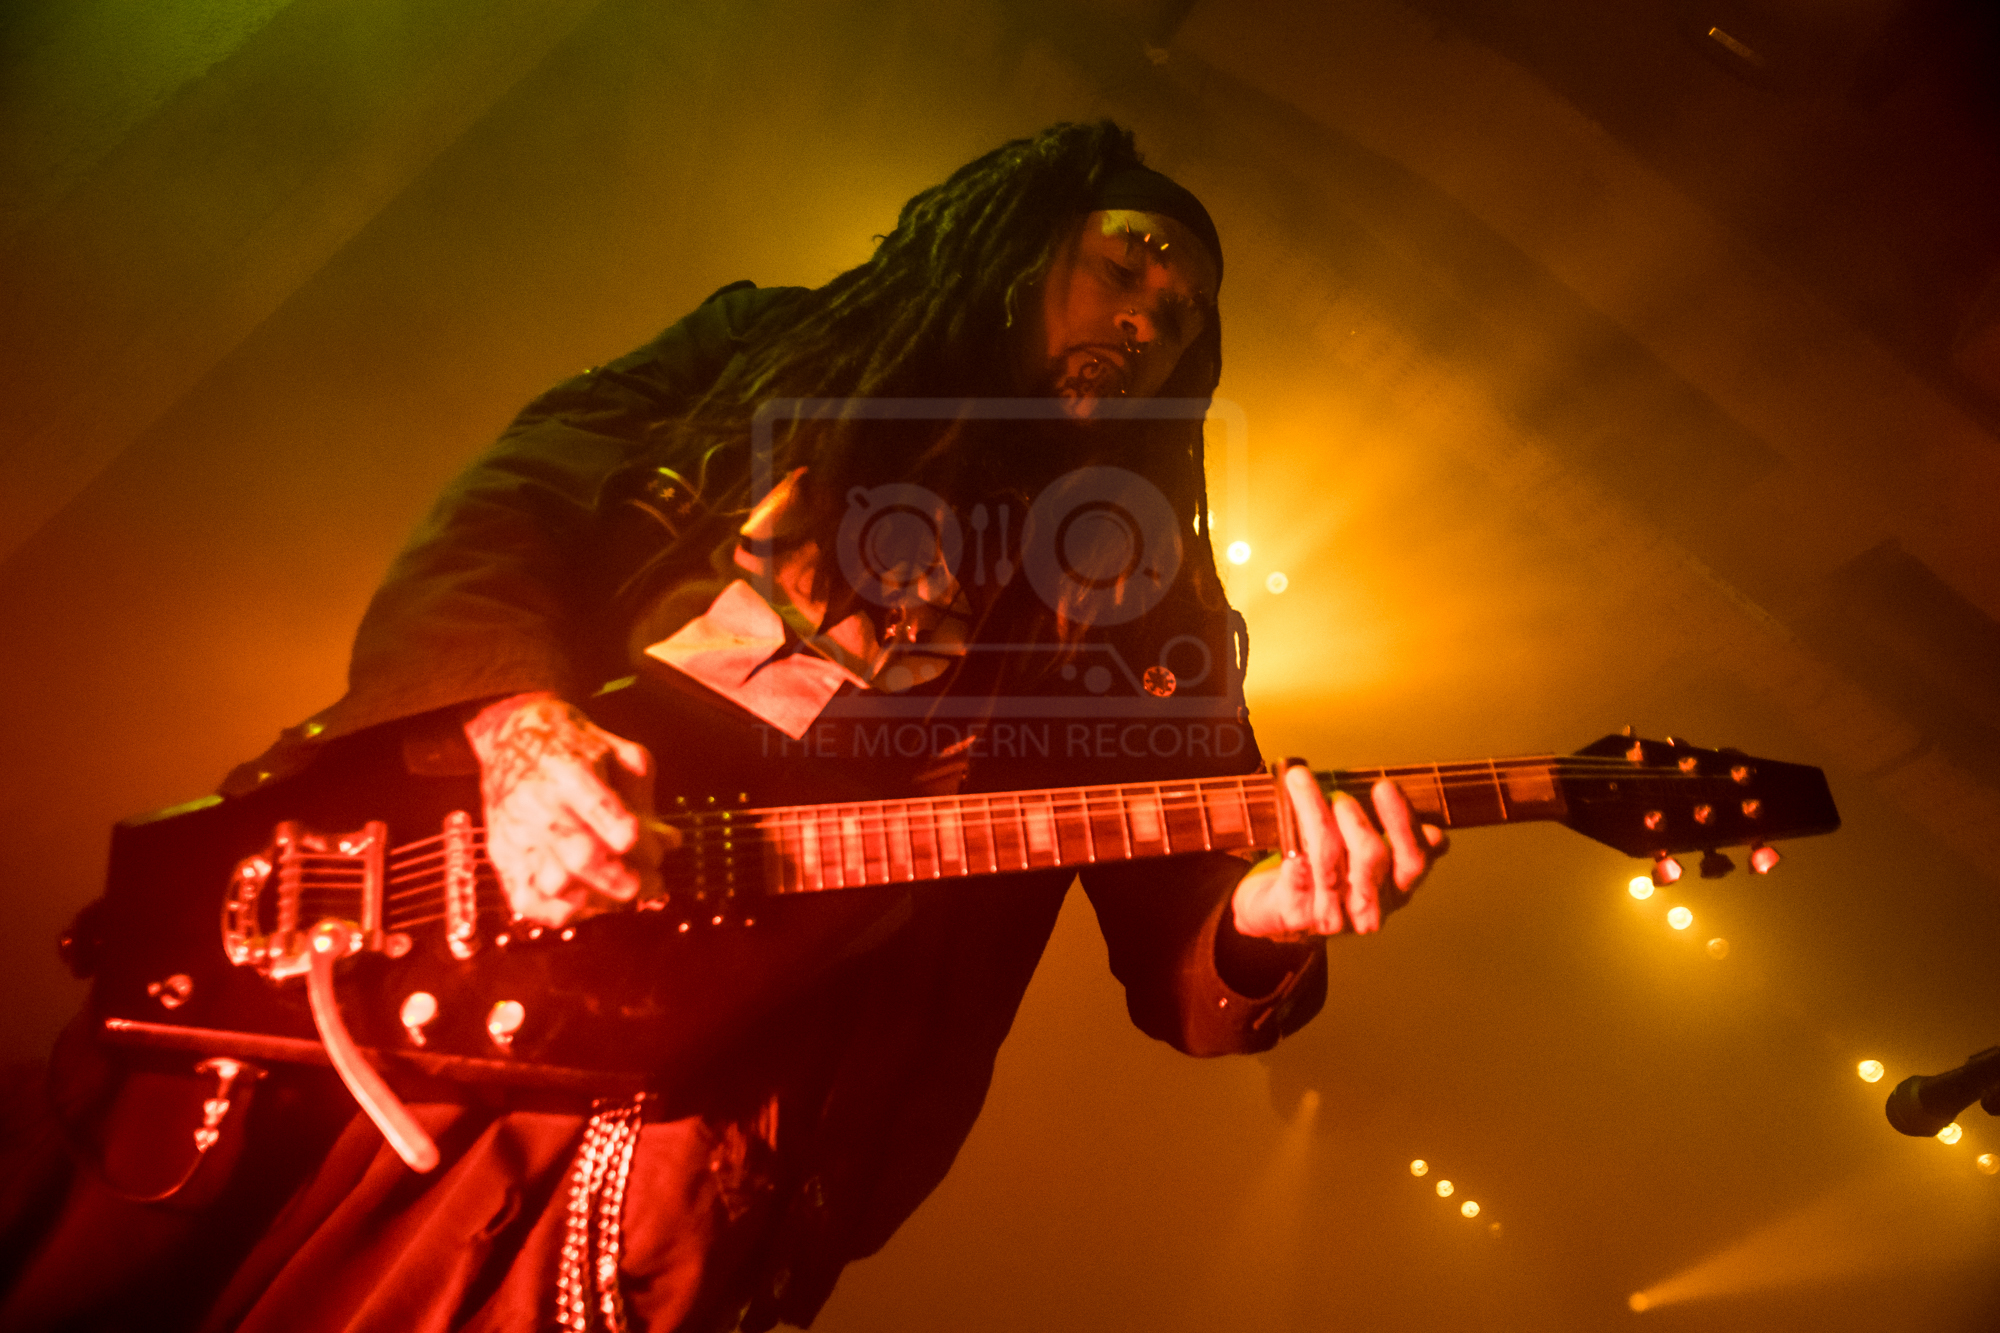 MINISTRY PERFORMING AT GLASGOW'S SWG3 - 03.07.2019  PICTURE BY: STEPHEN WILSON PHOTOGRAPHY